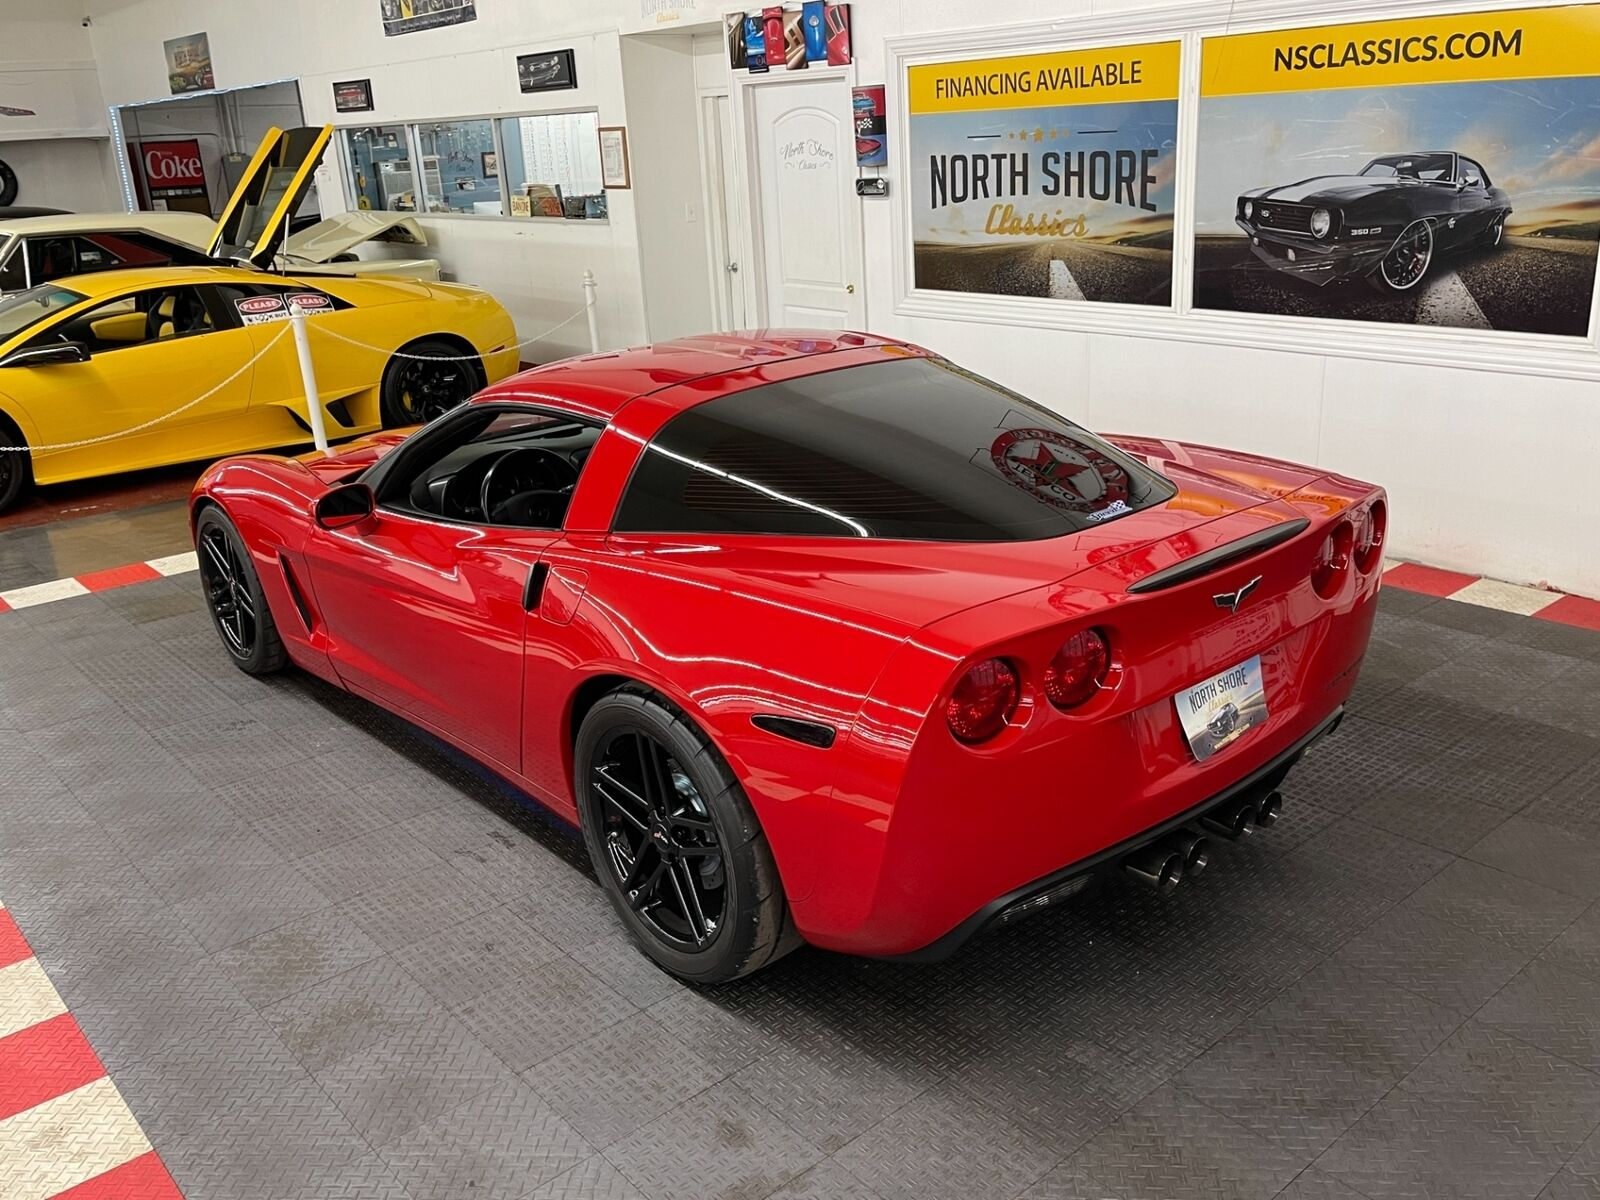 2007 Red Chevrolet Corvette   | C6 Corvette Photo 3